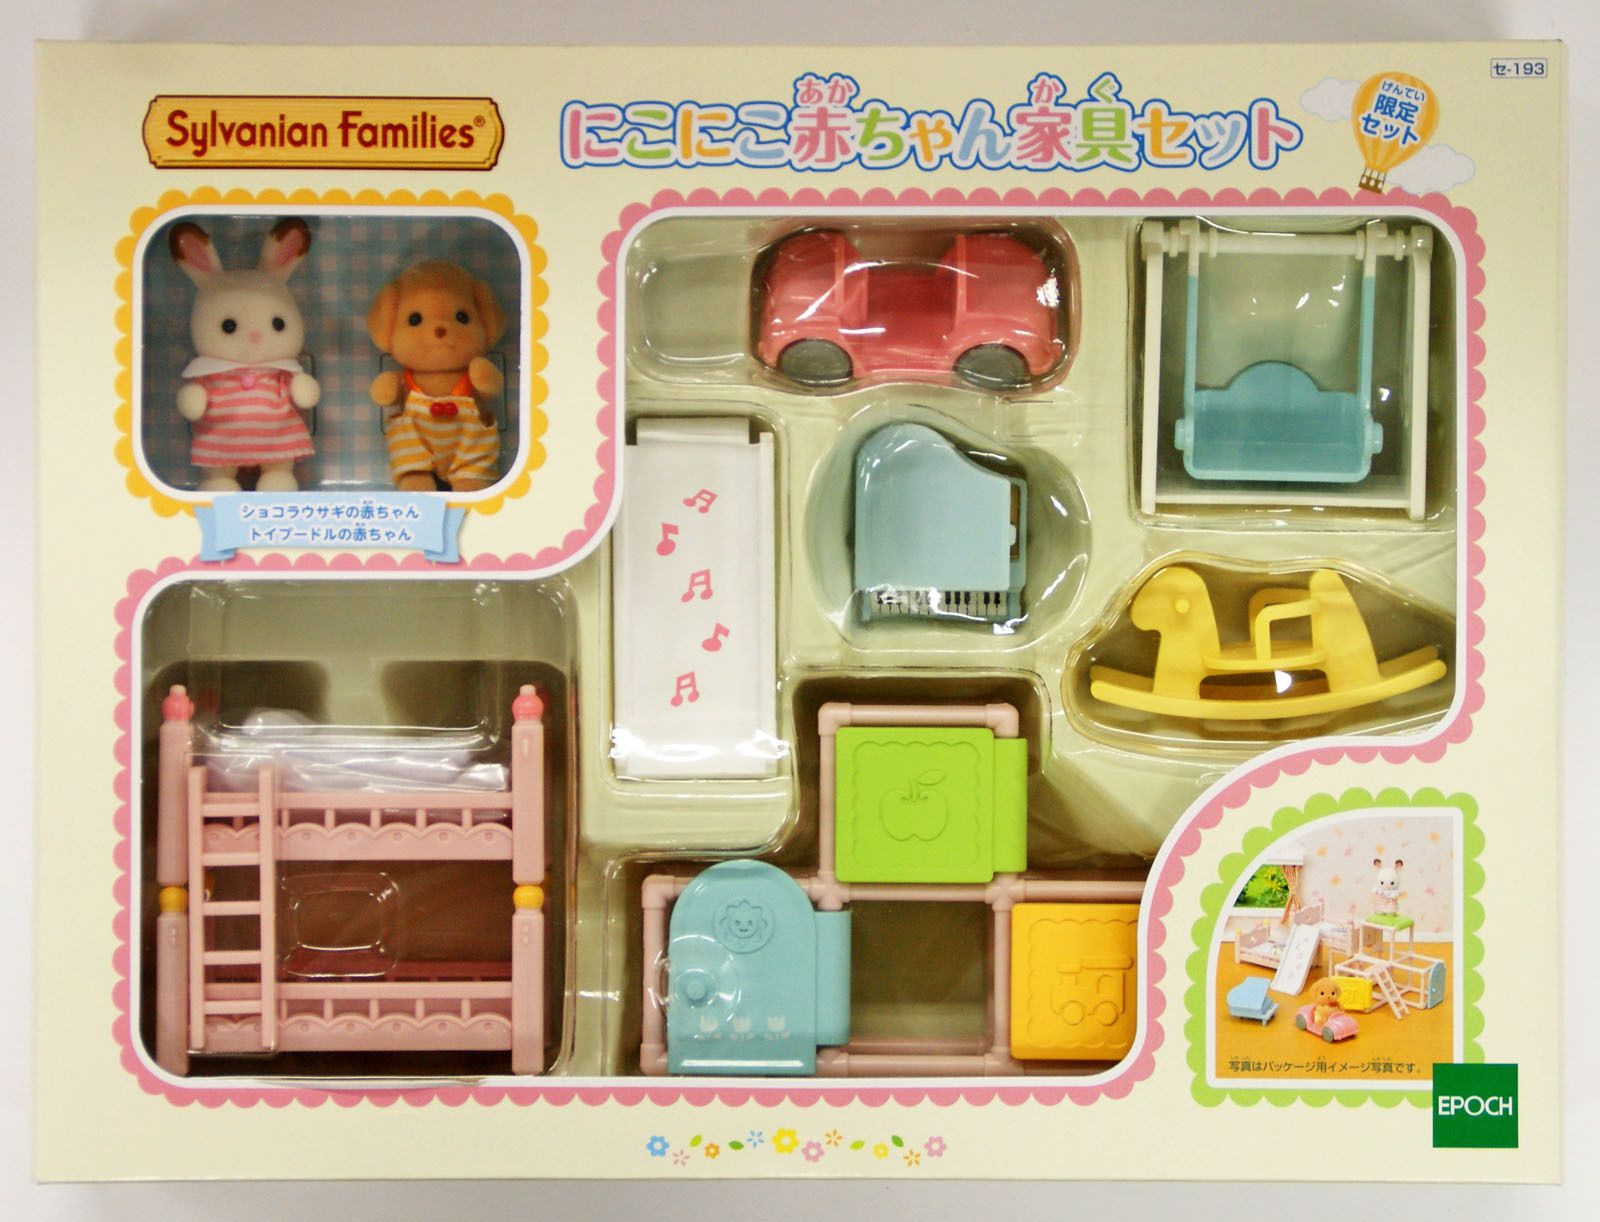 Details about JP Sylvanian Families SE 193 Smiley Baby Furniture